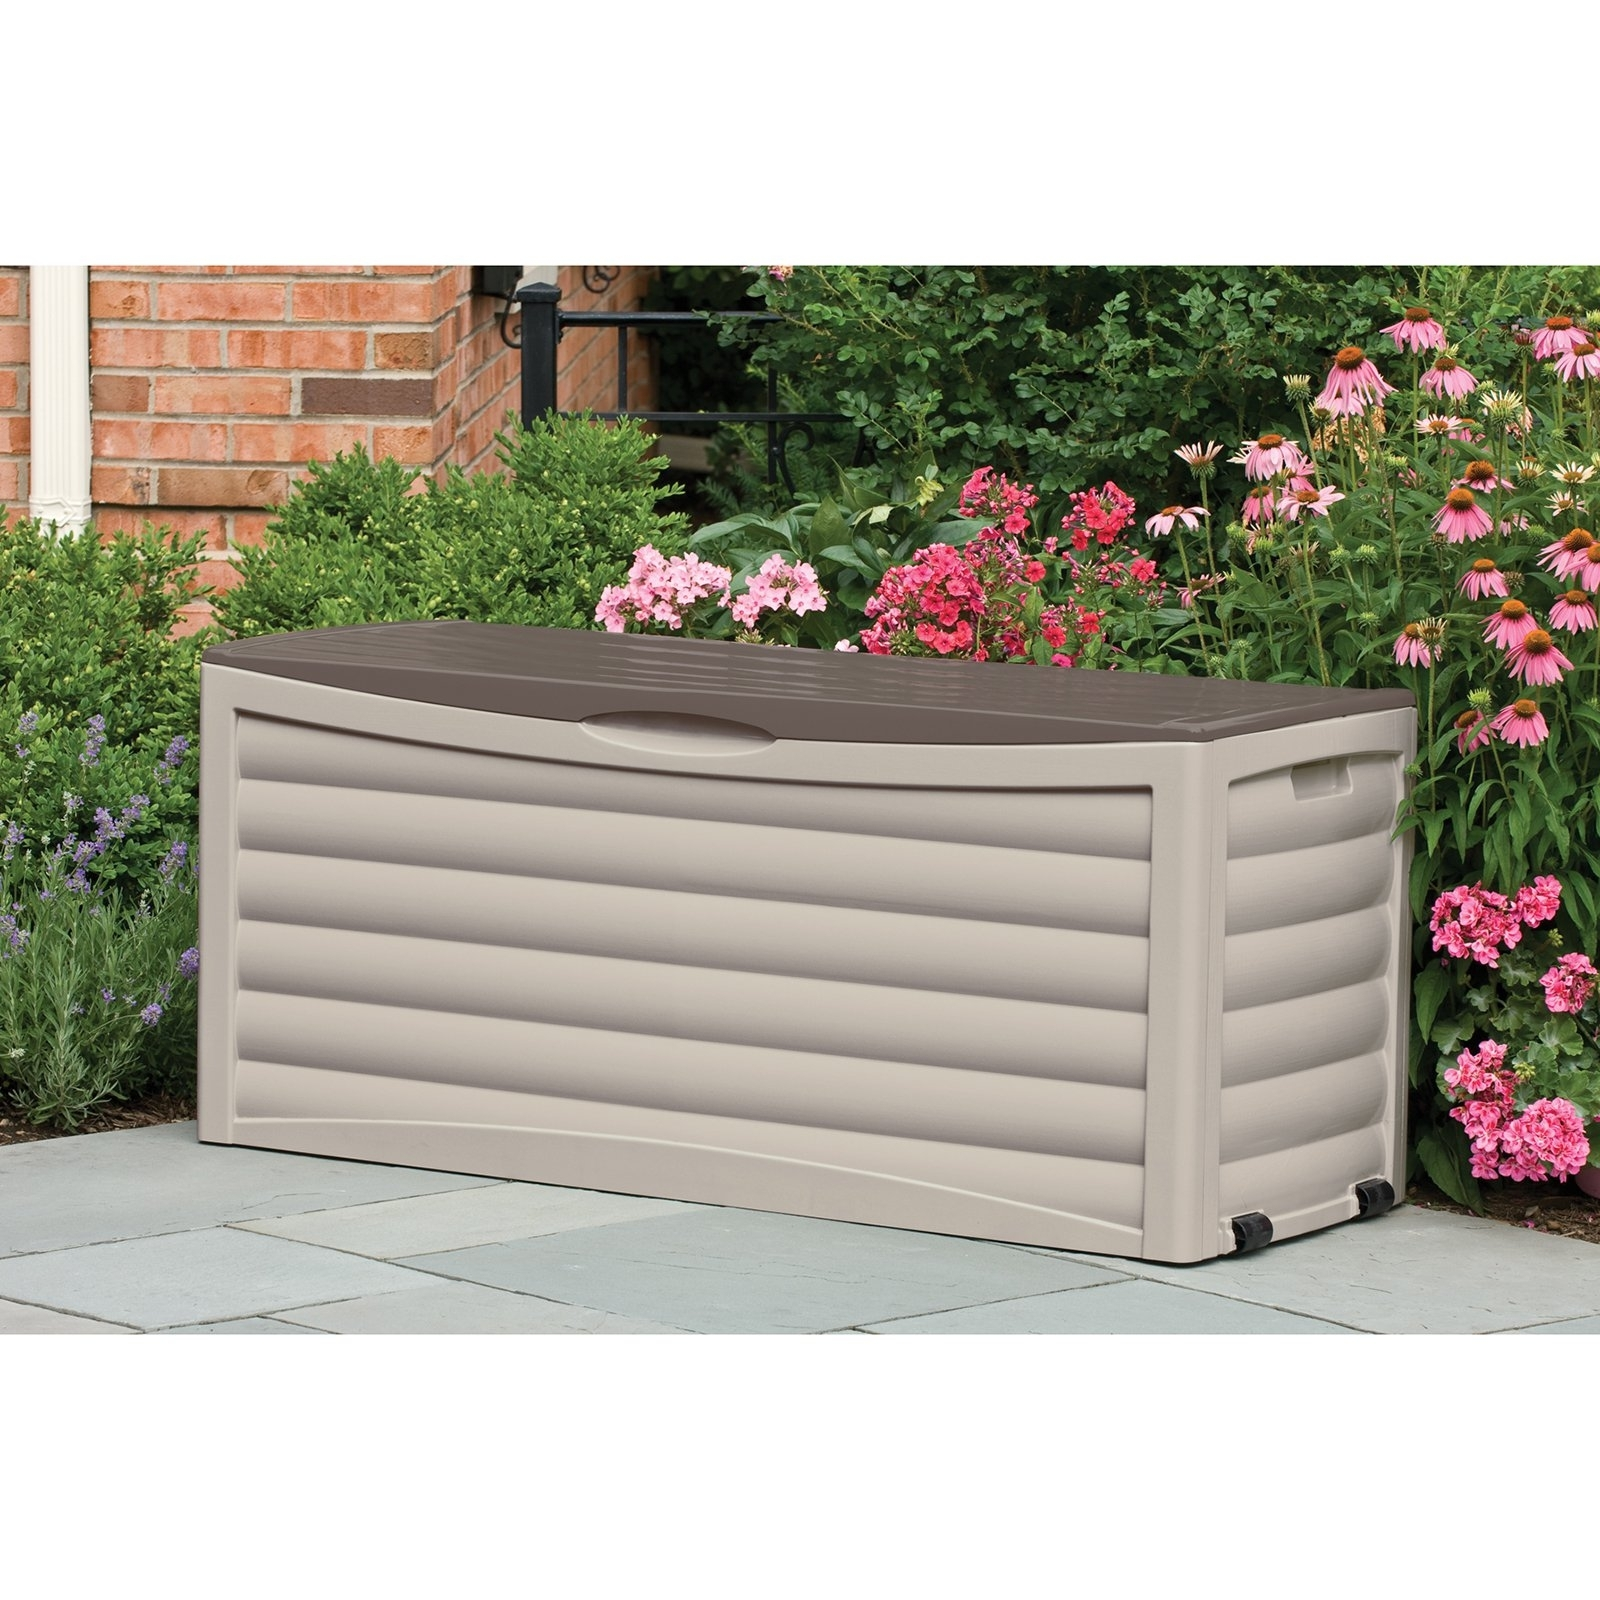 Keter Brightwood Resin 120 Gallon Outdoor Storage Deck Box Deck Within Waterproof Outdoor Cushion Storage Bo Waterproof Outdoor Cushion Storage Box Idea